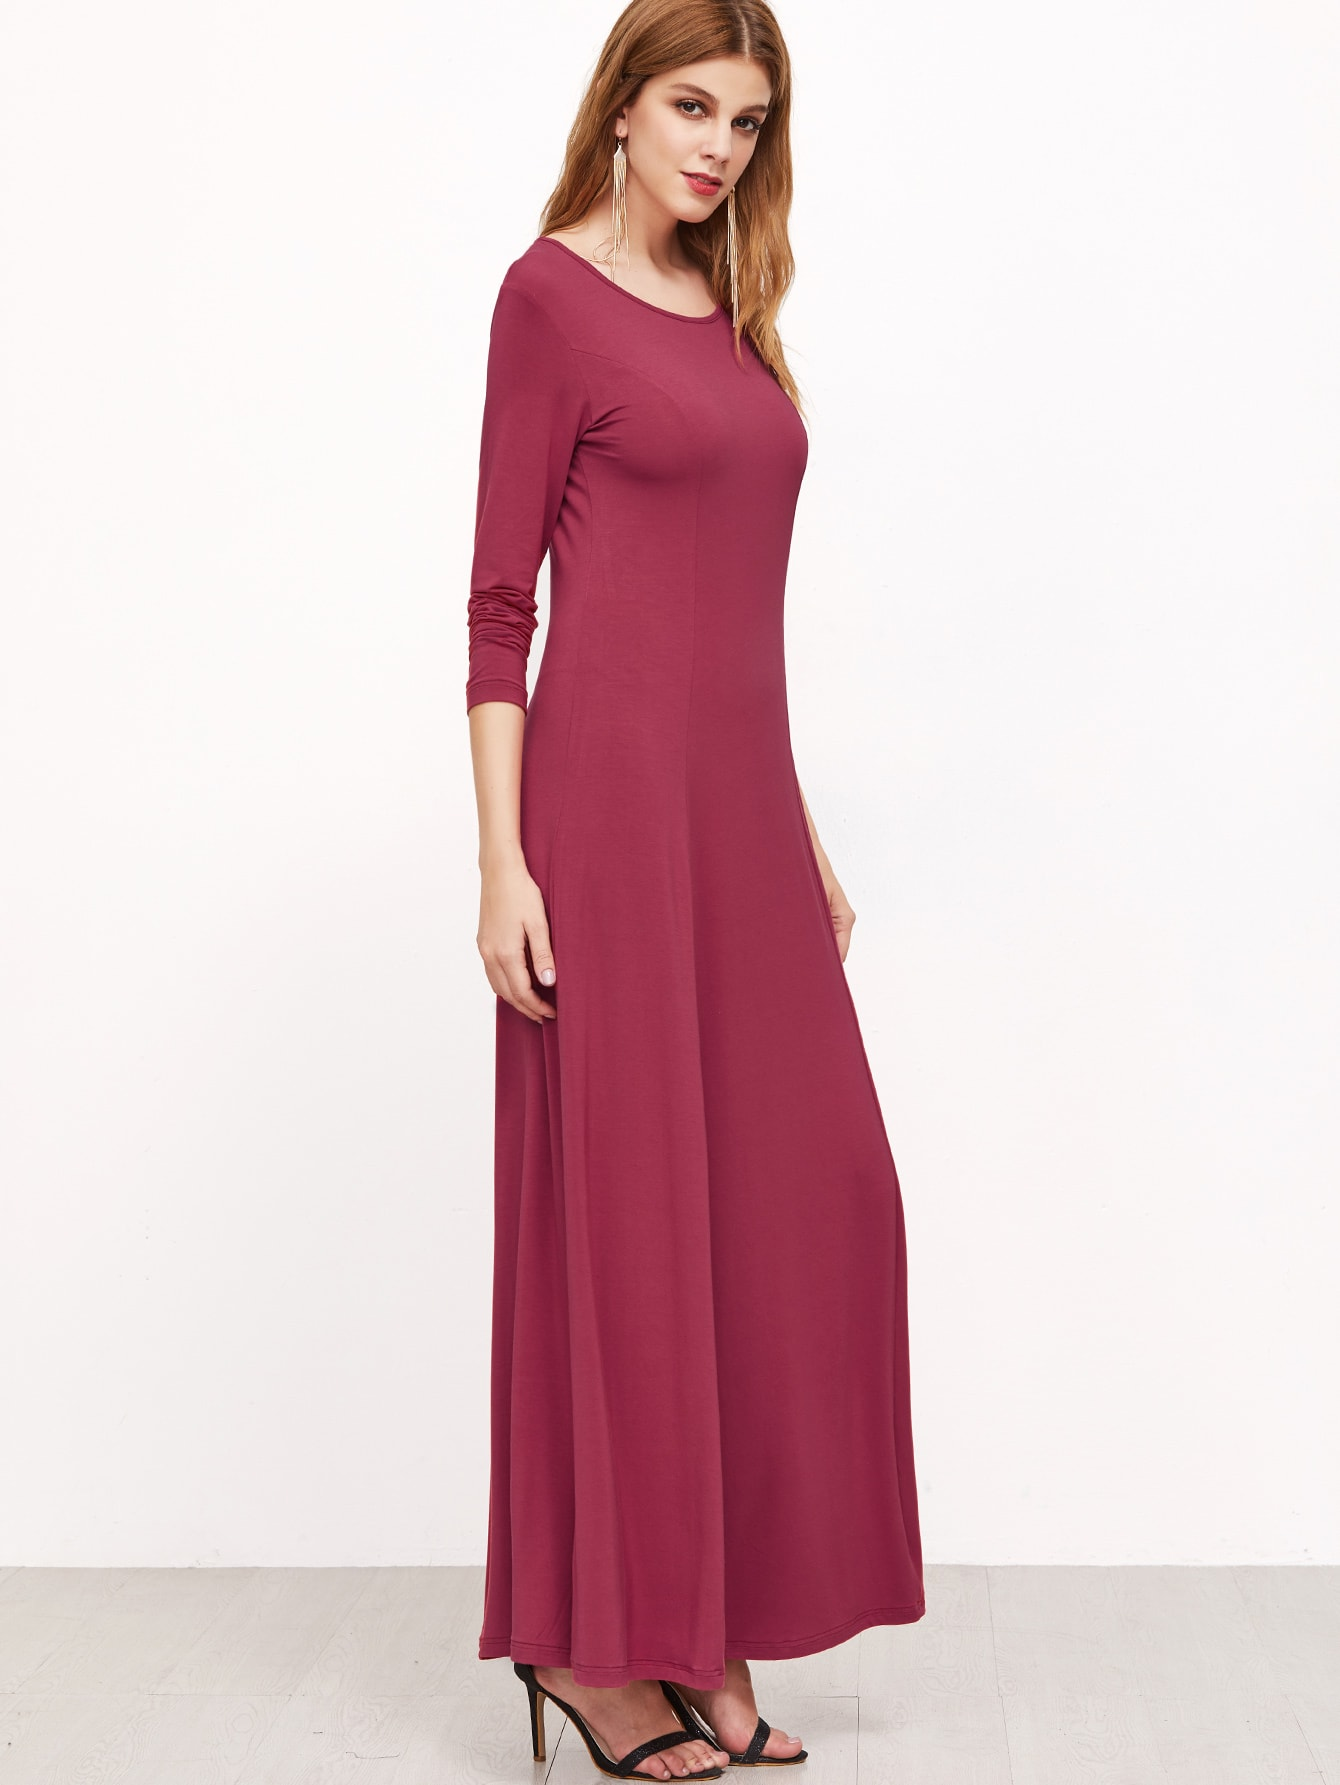 Hot Pink Long Sleeve A Line Maxi Dress -SheIn(Sheinside)